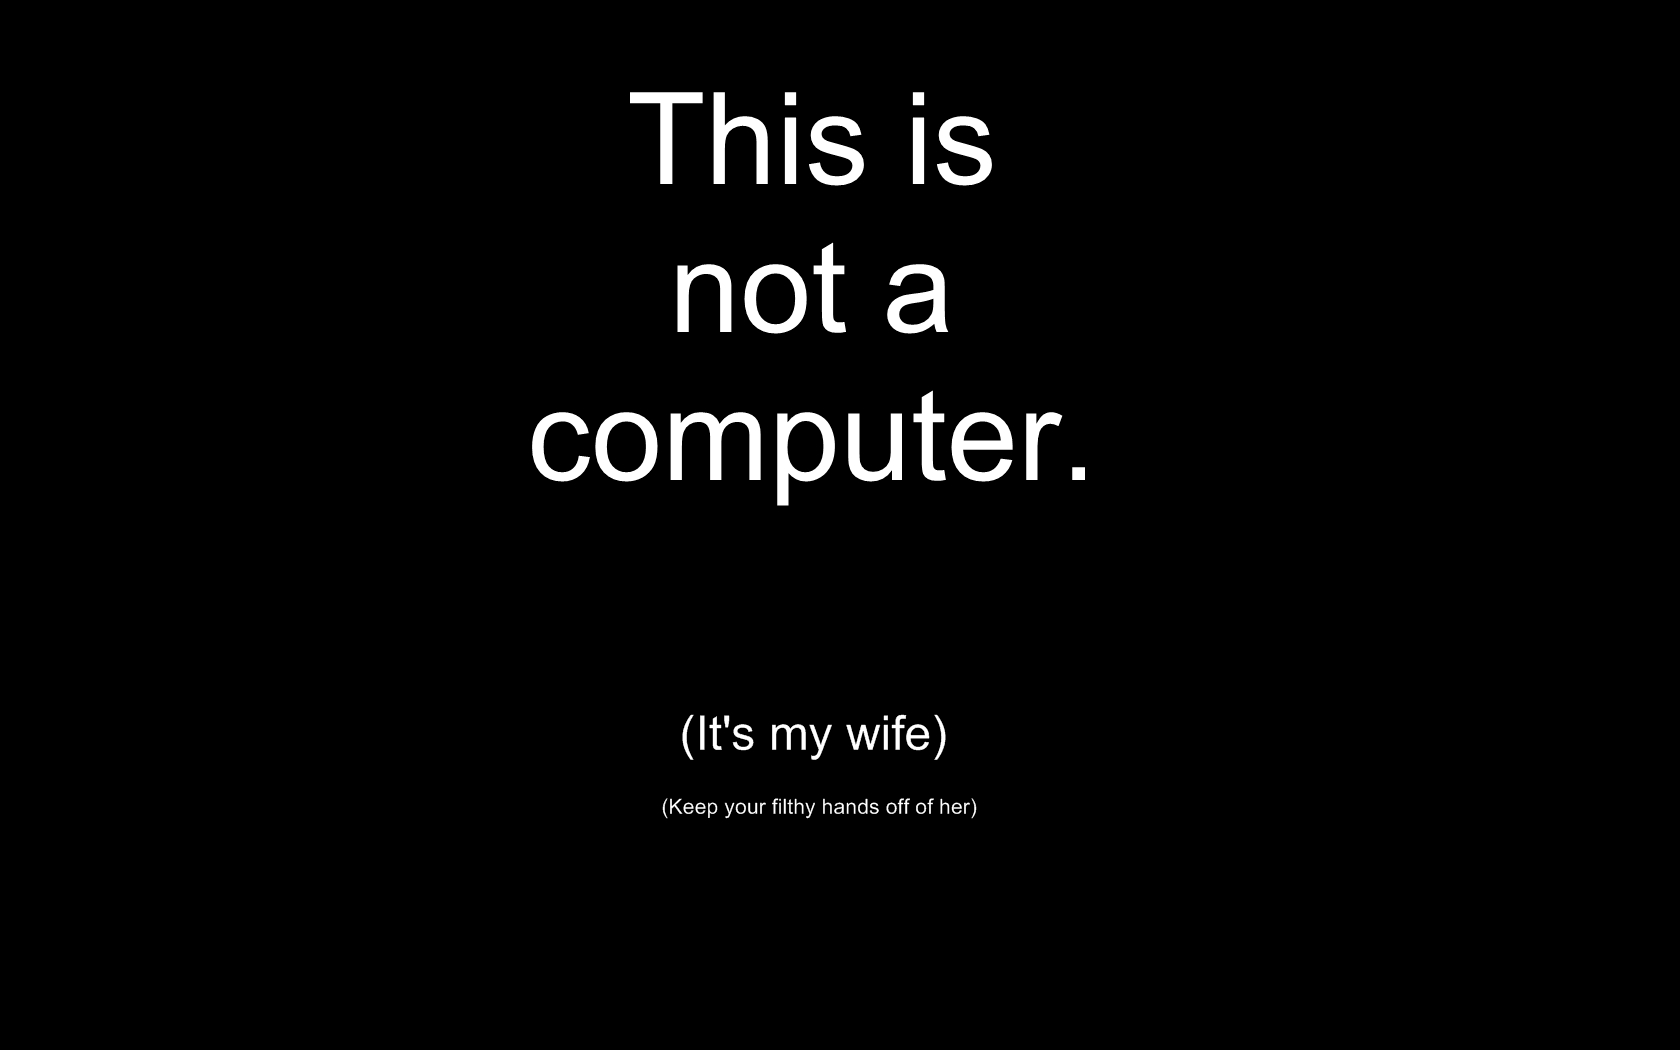 Wallpaper – This is not computer